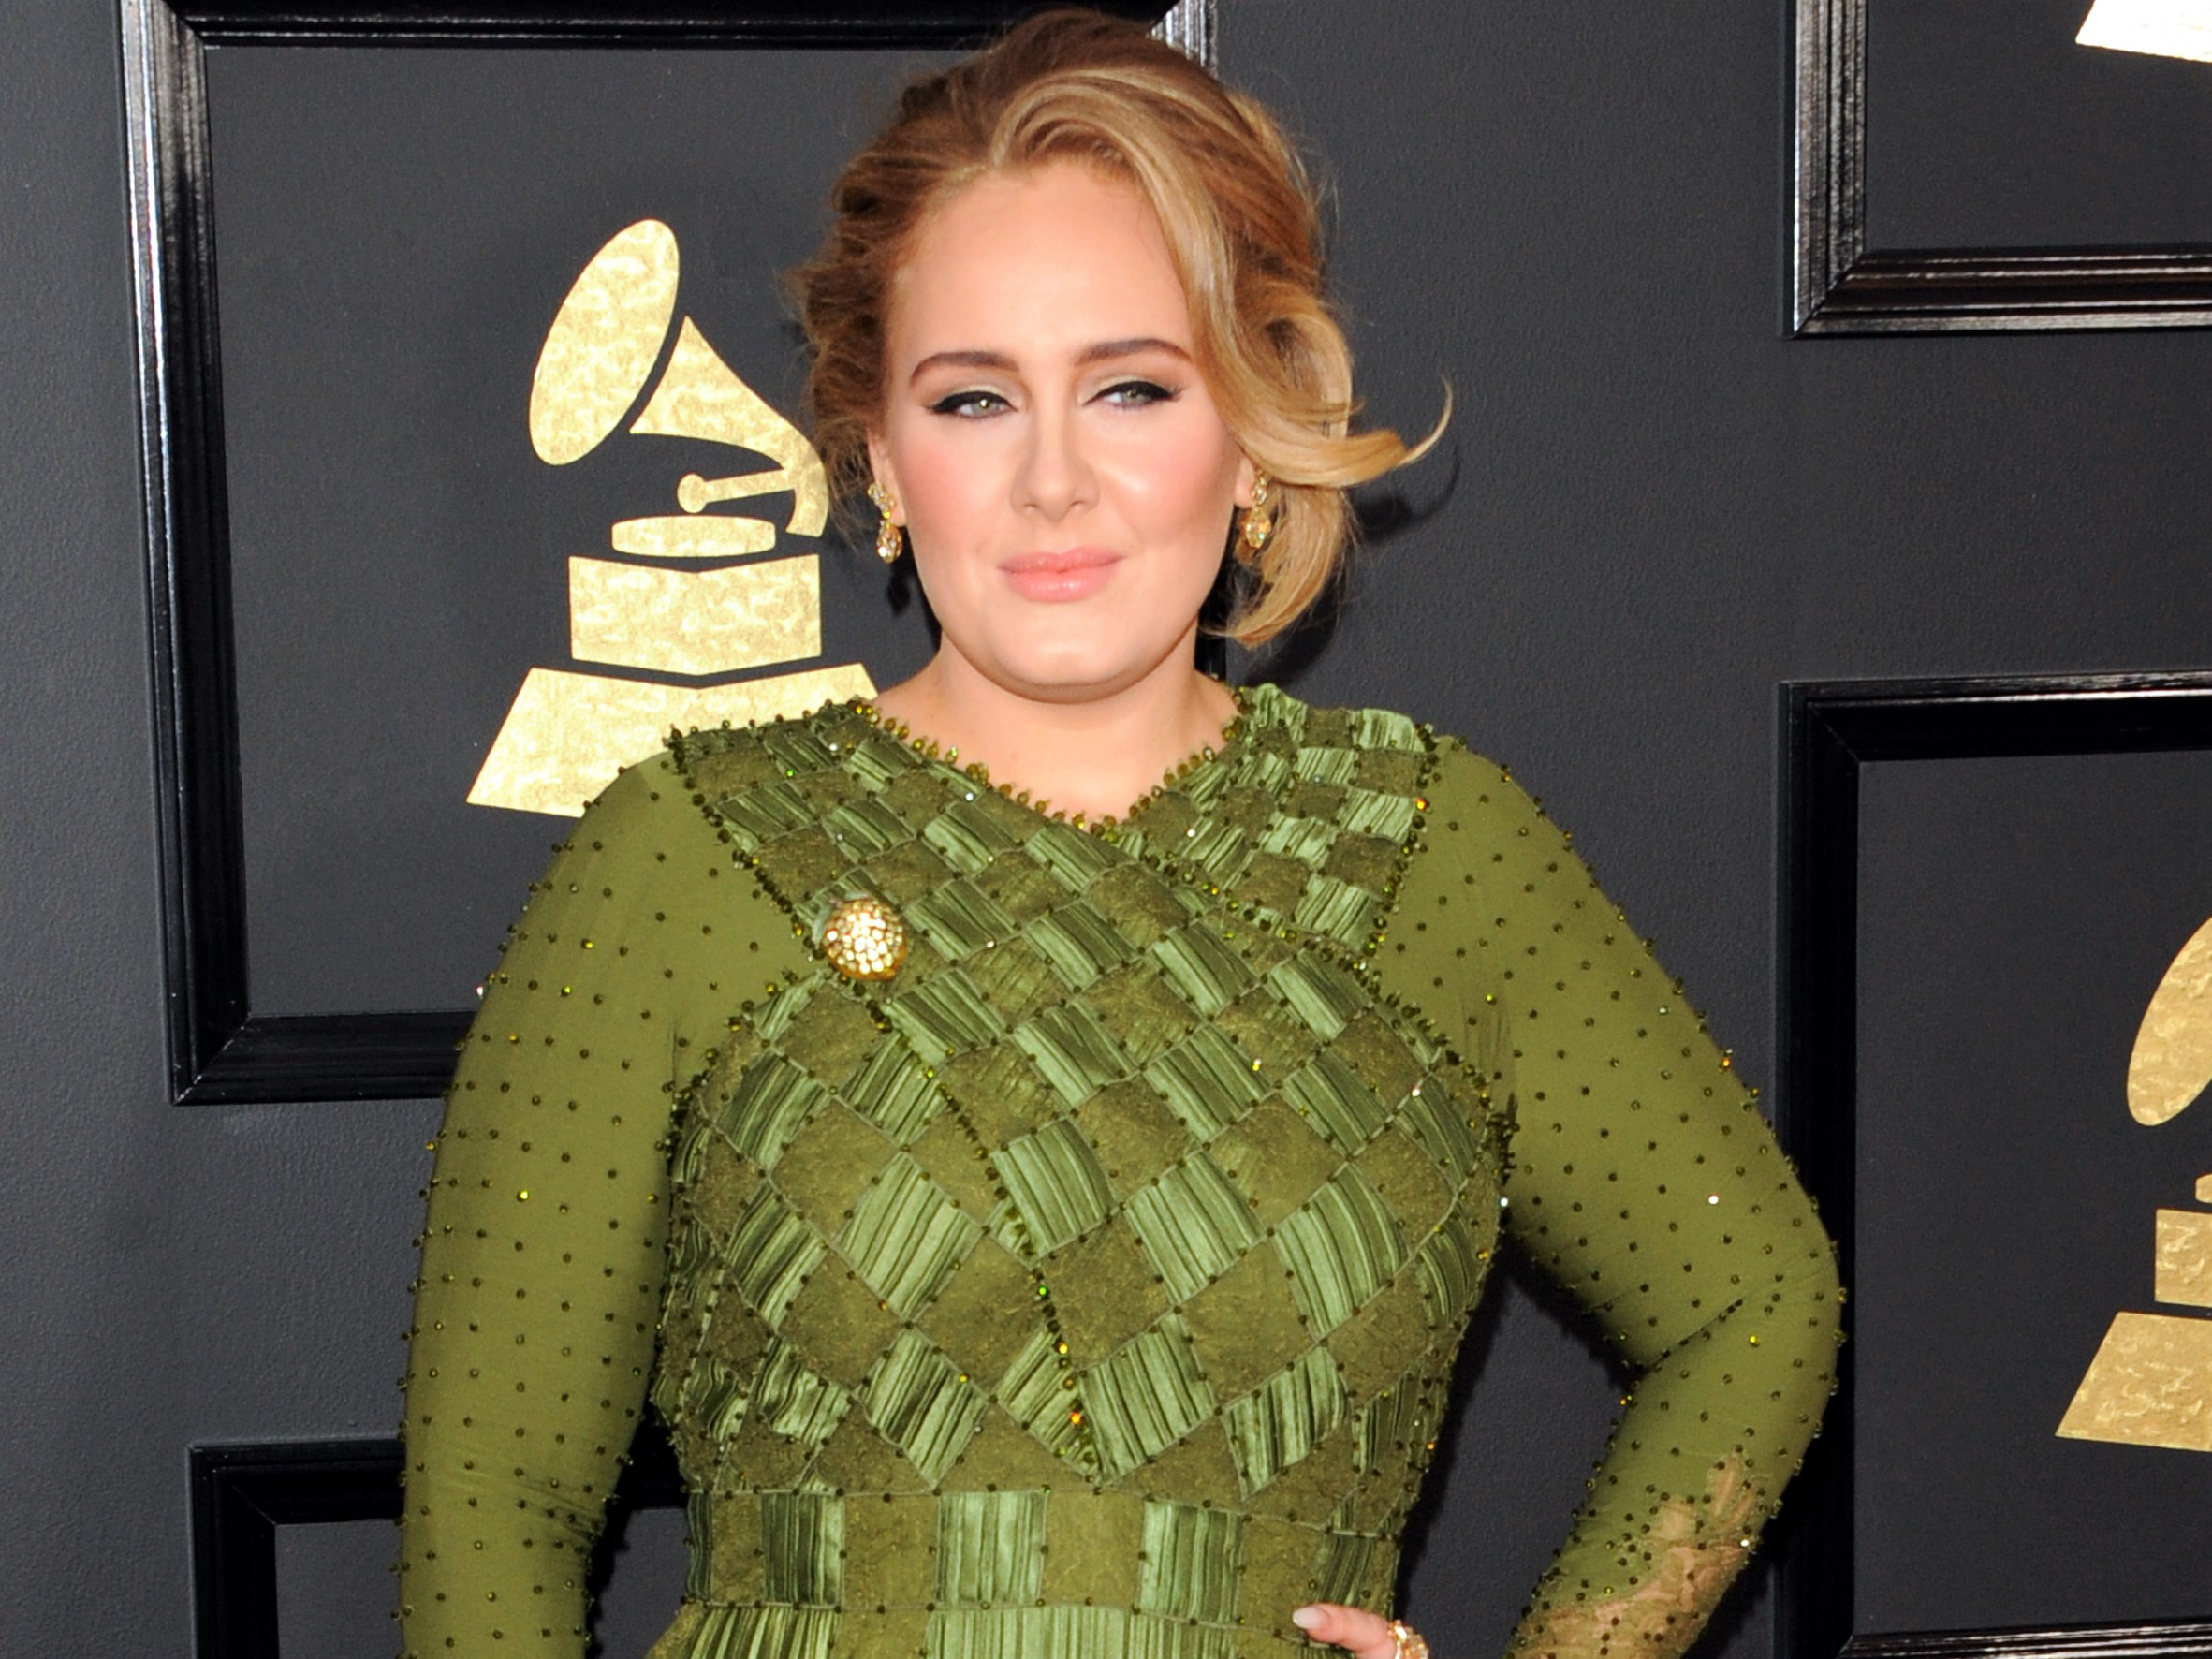 Adele Green Dress Award Show Carpet